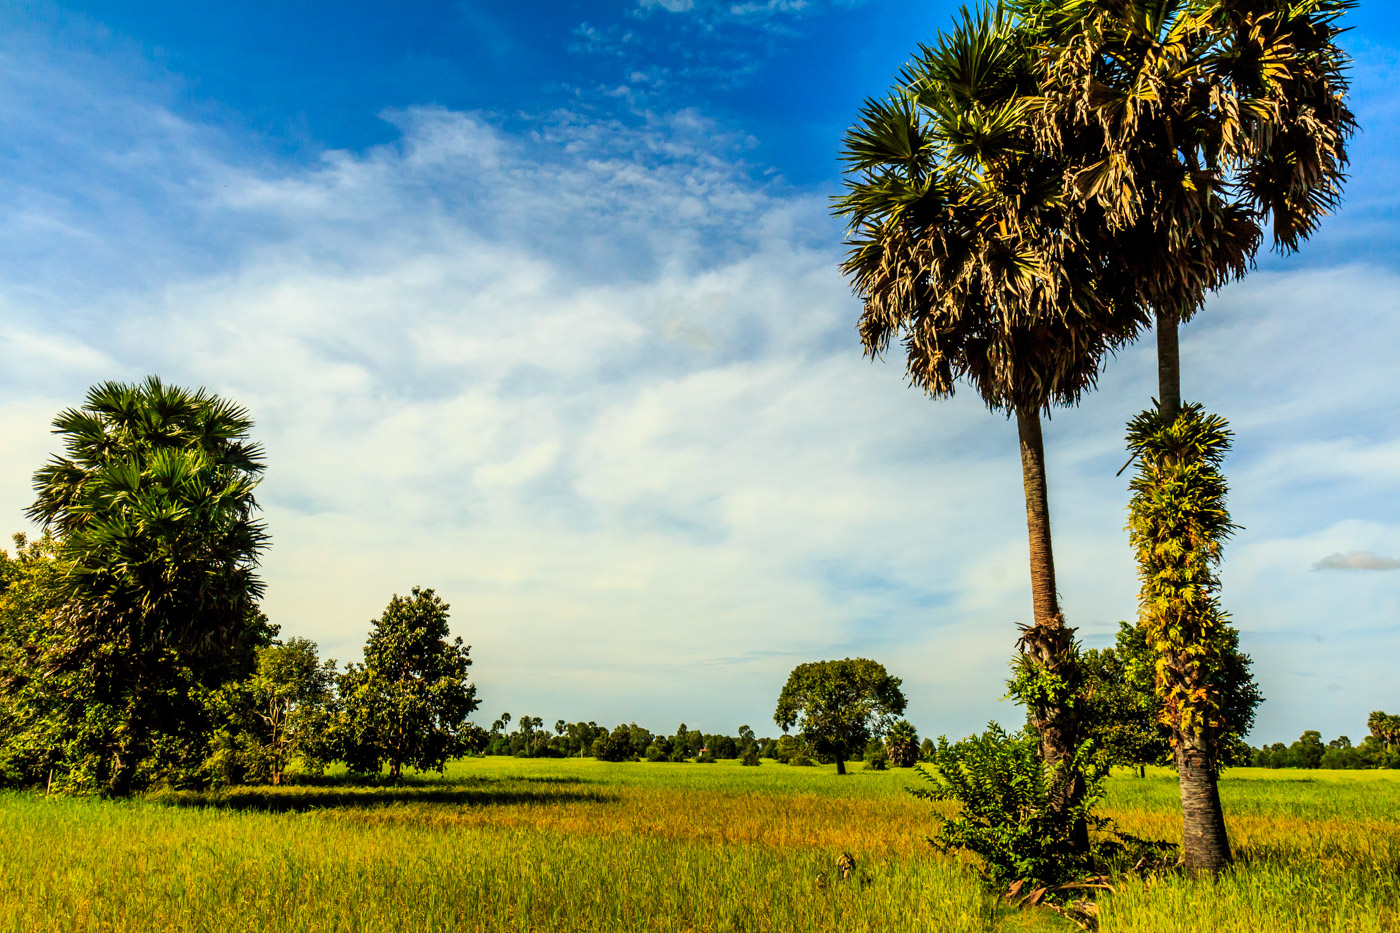 In the fields of Cambodia.